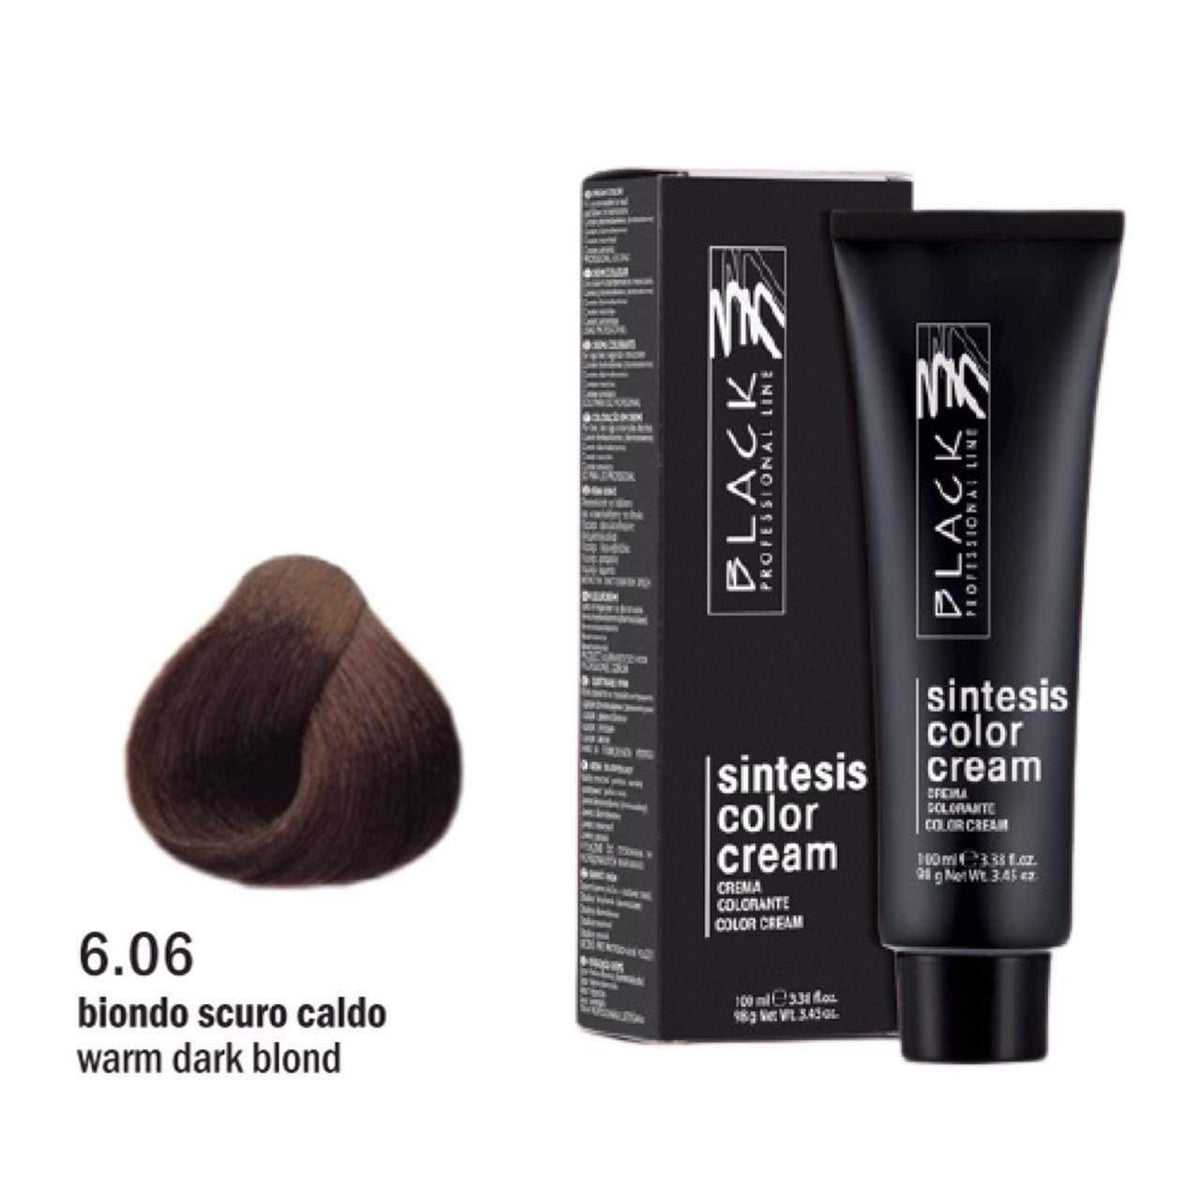 Black Sintesis Color Cream Warm Dark Blond 6.06